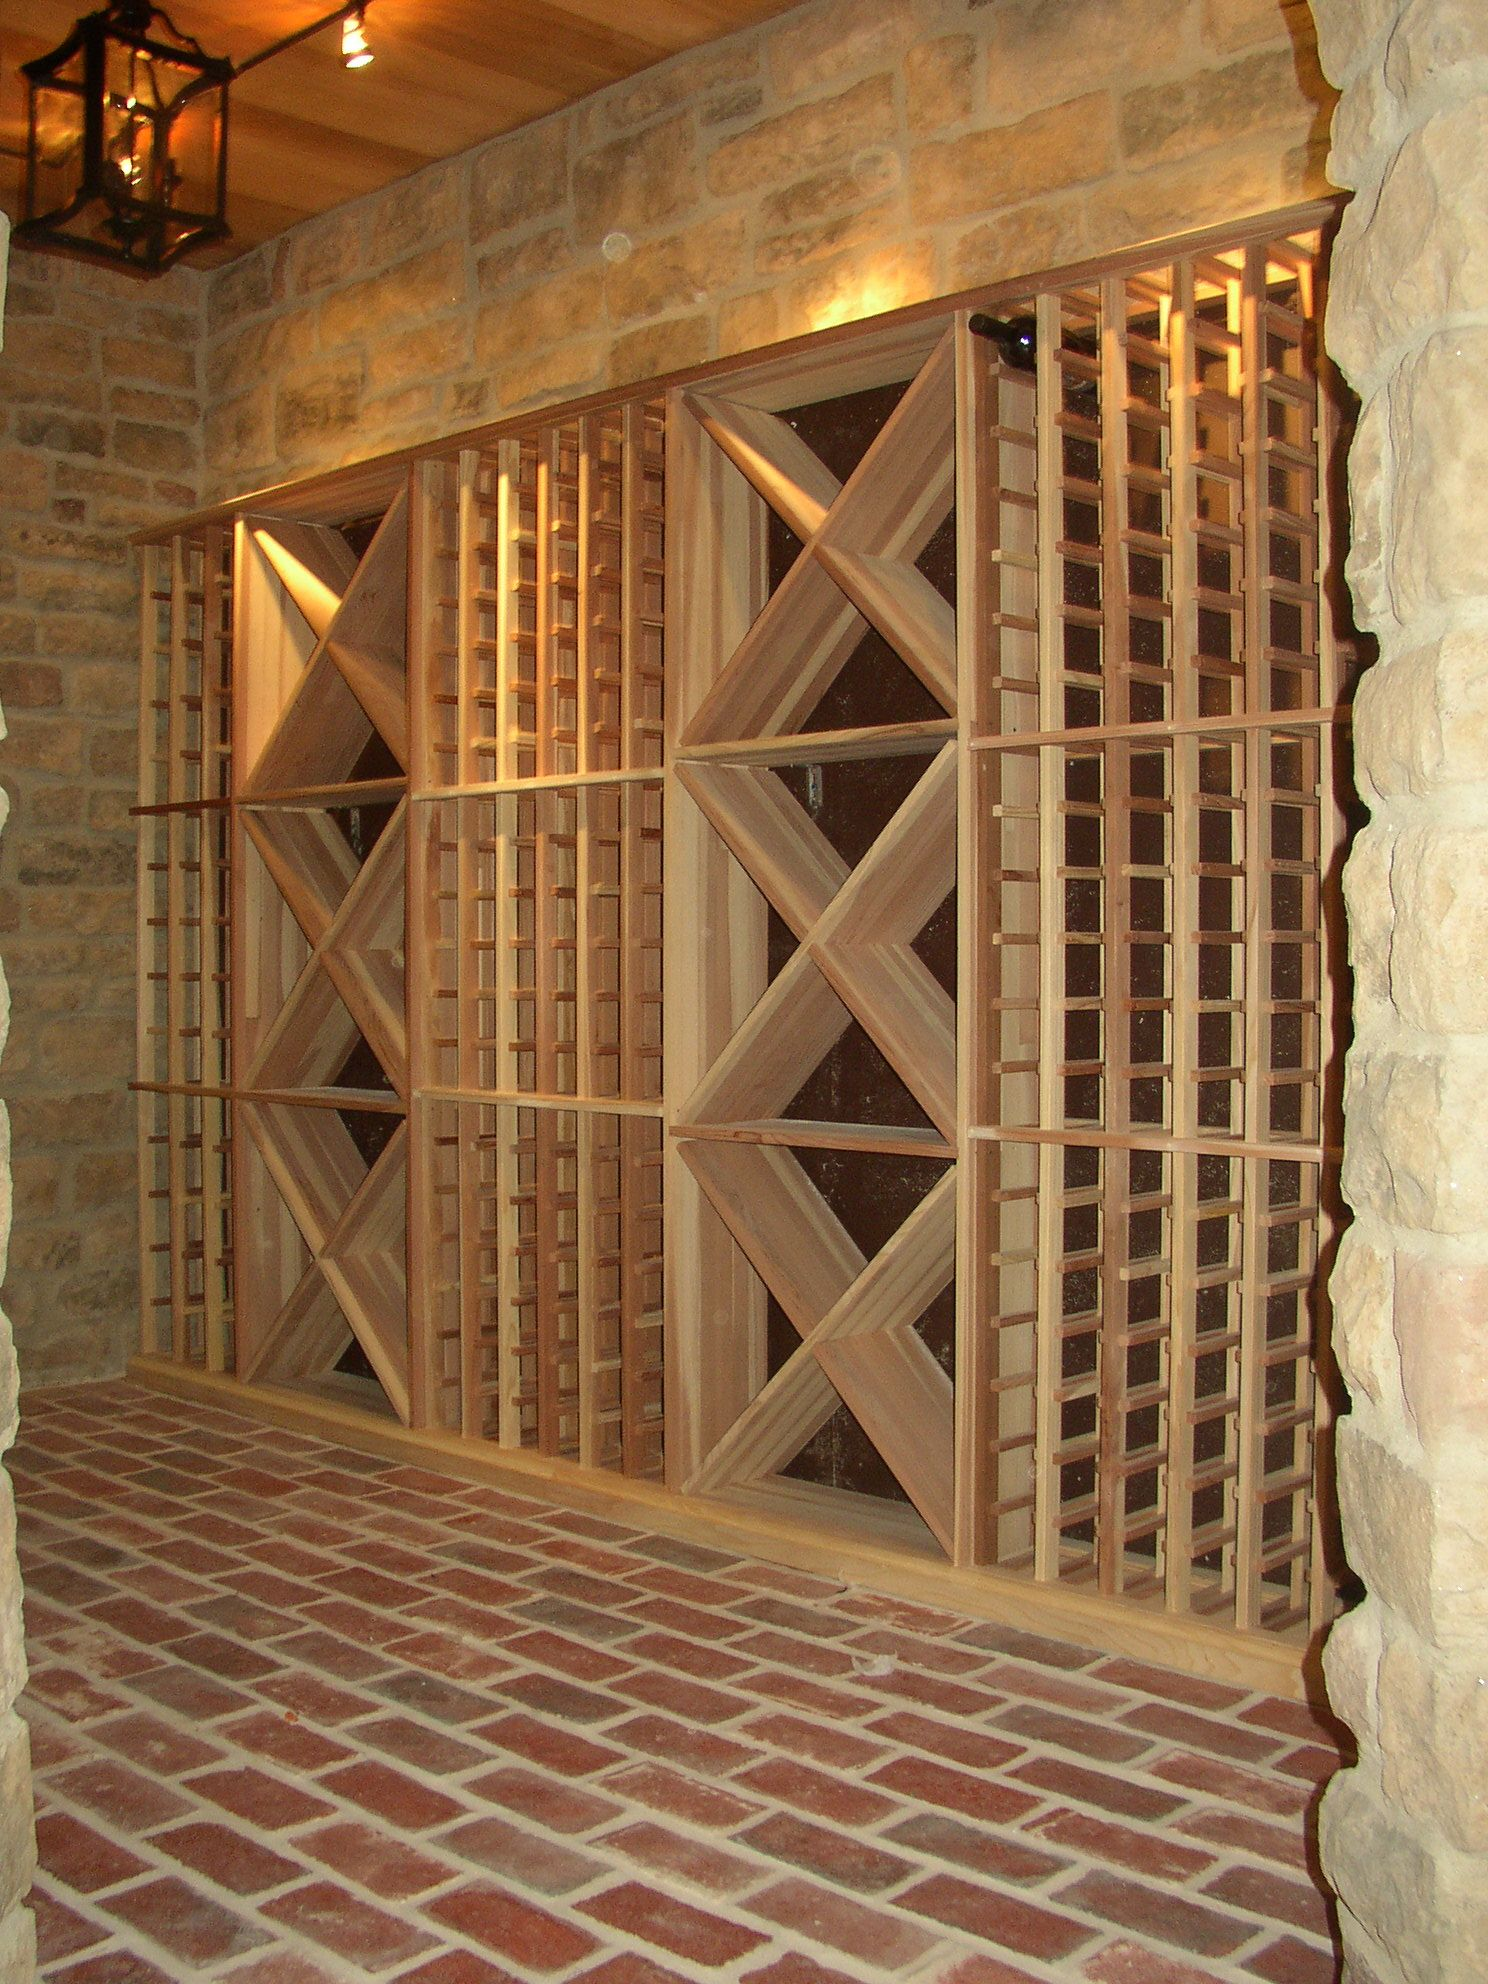 Mini Wine Cellar Ideas build a wine cellar | home wine cellars, wine cellar design